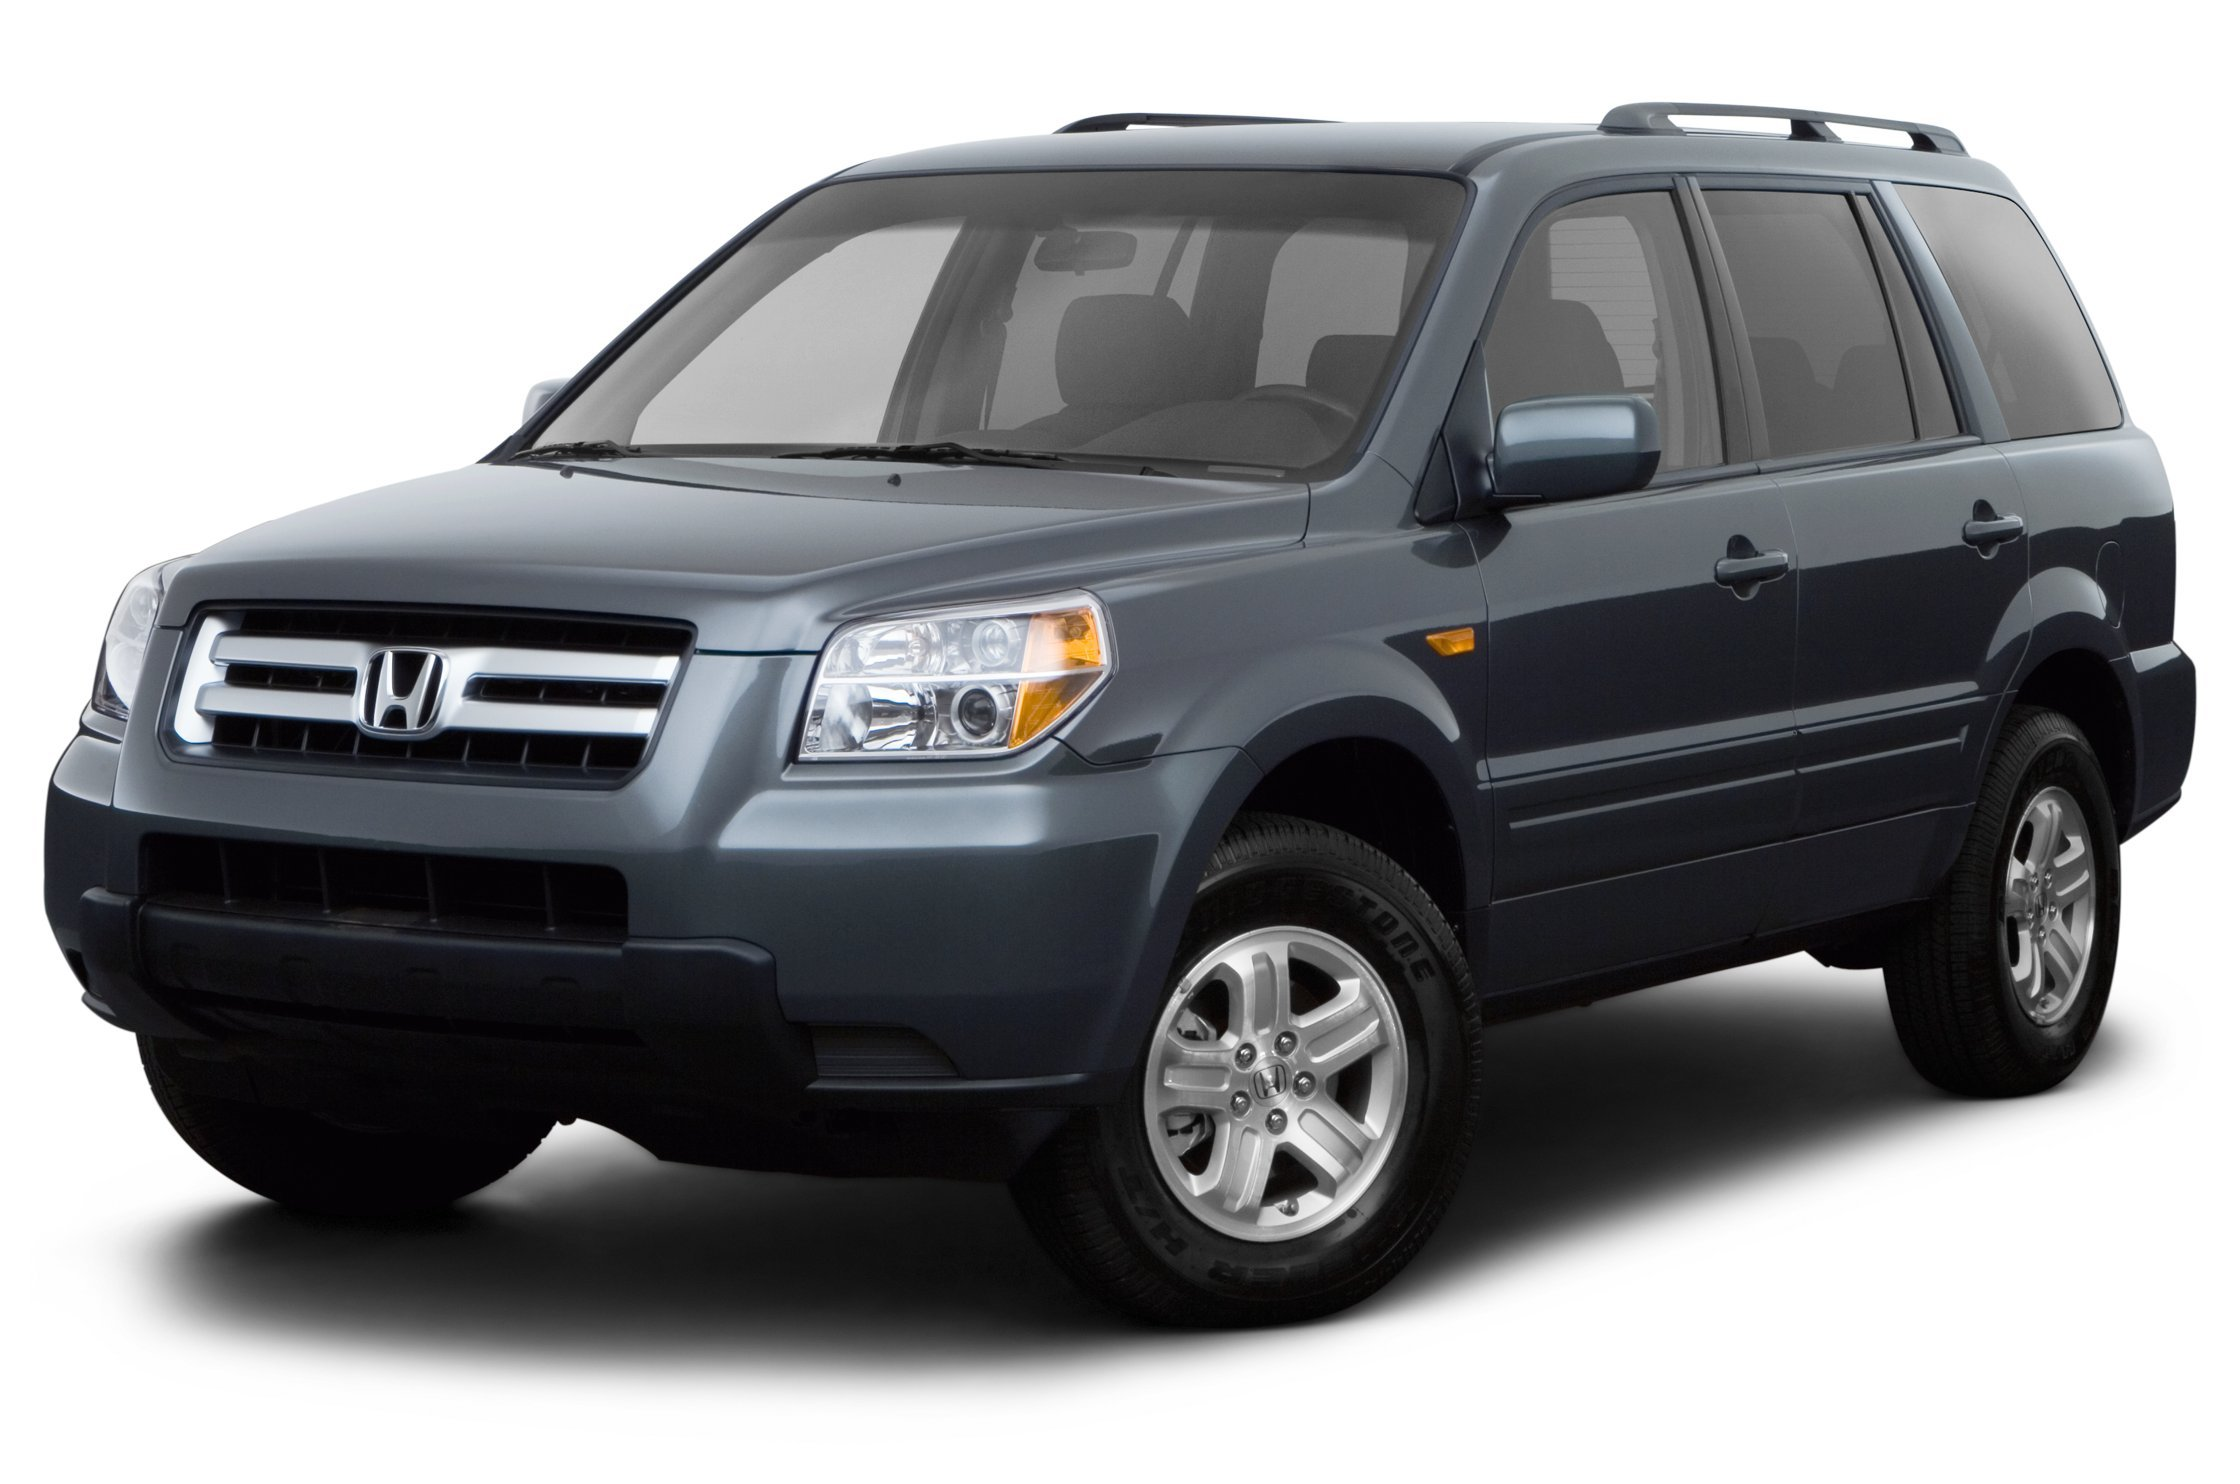 2008 honda pilot ex 2 wheel drive 4 door